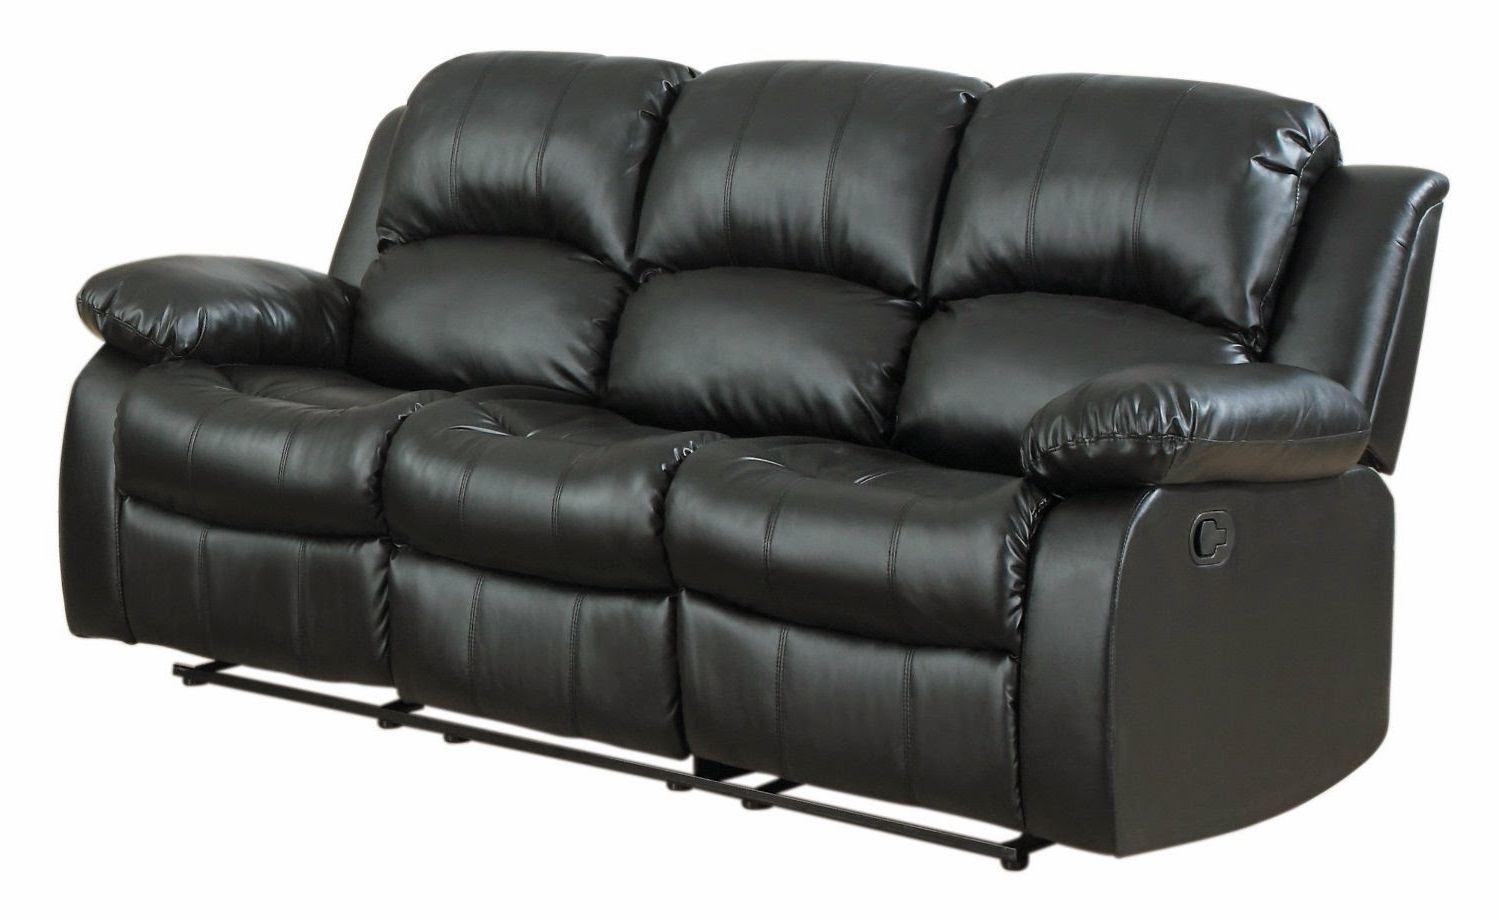 2019 Berkline Sectional Sofas Inside Reclining Sofas For Sale: Berkline Leather Reclining Sofa Costco (View 1 of 20)